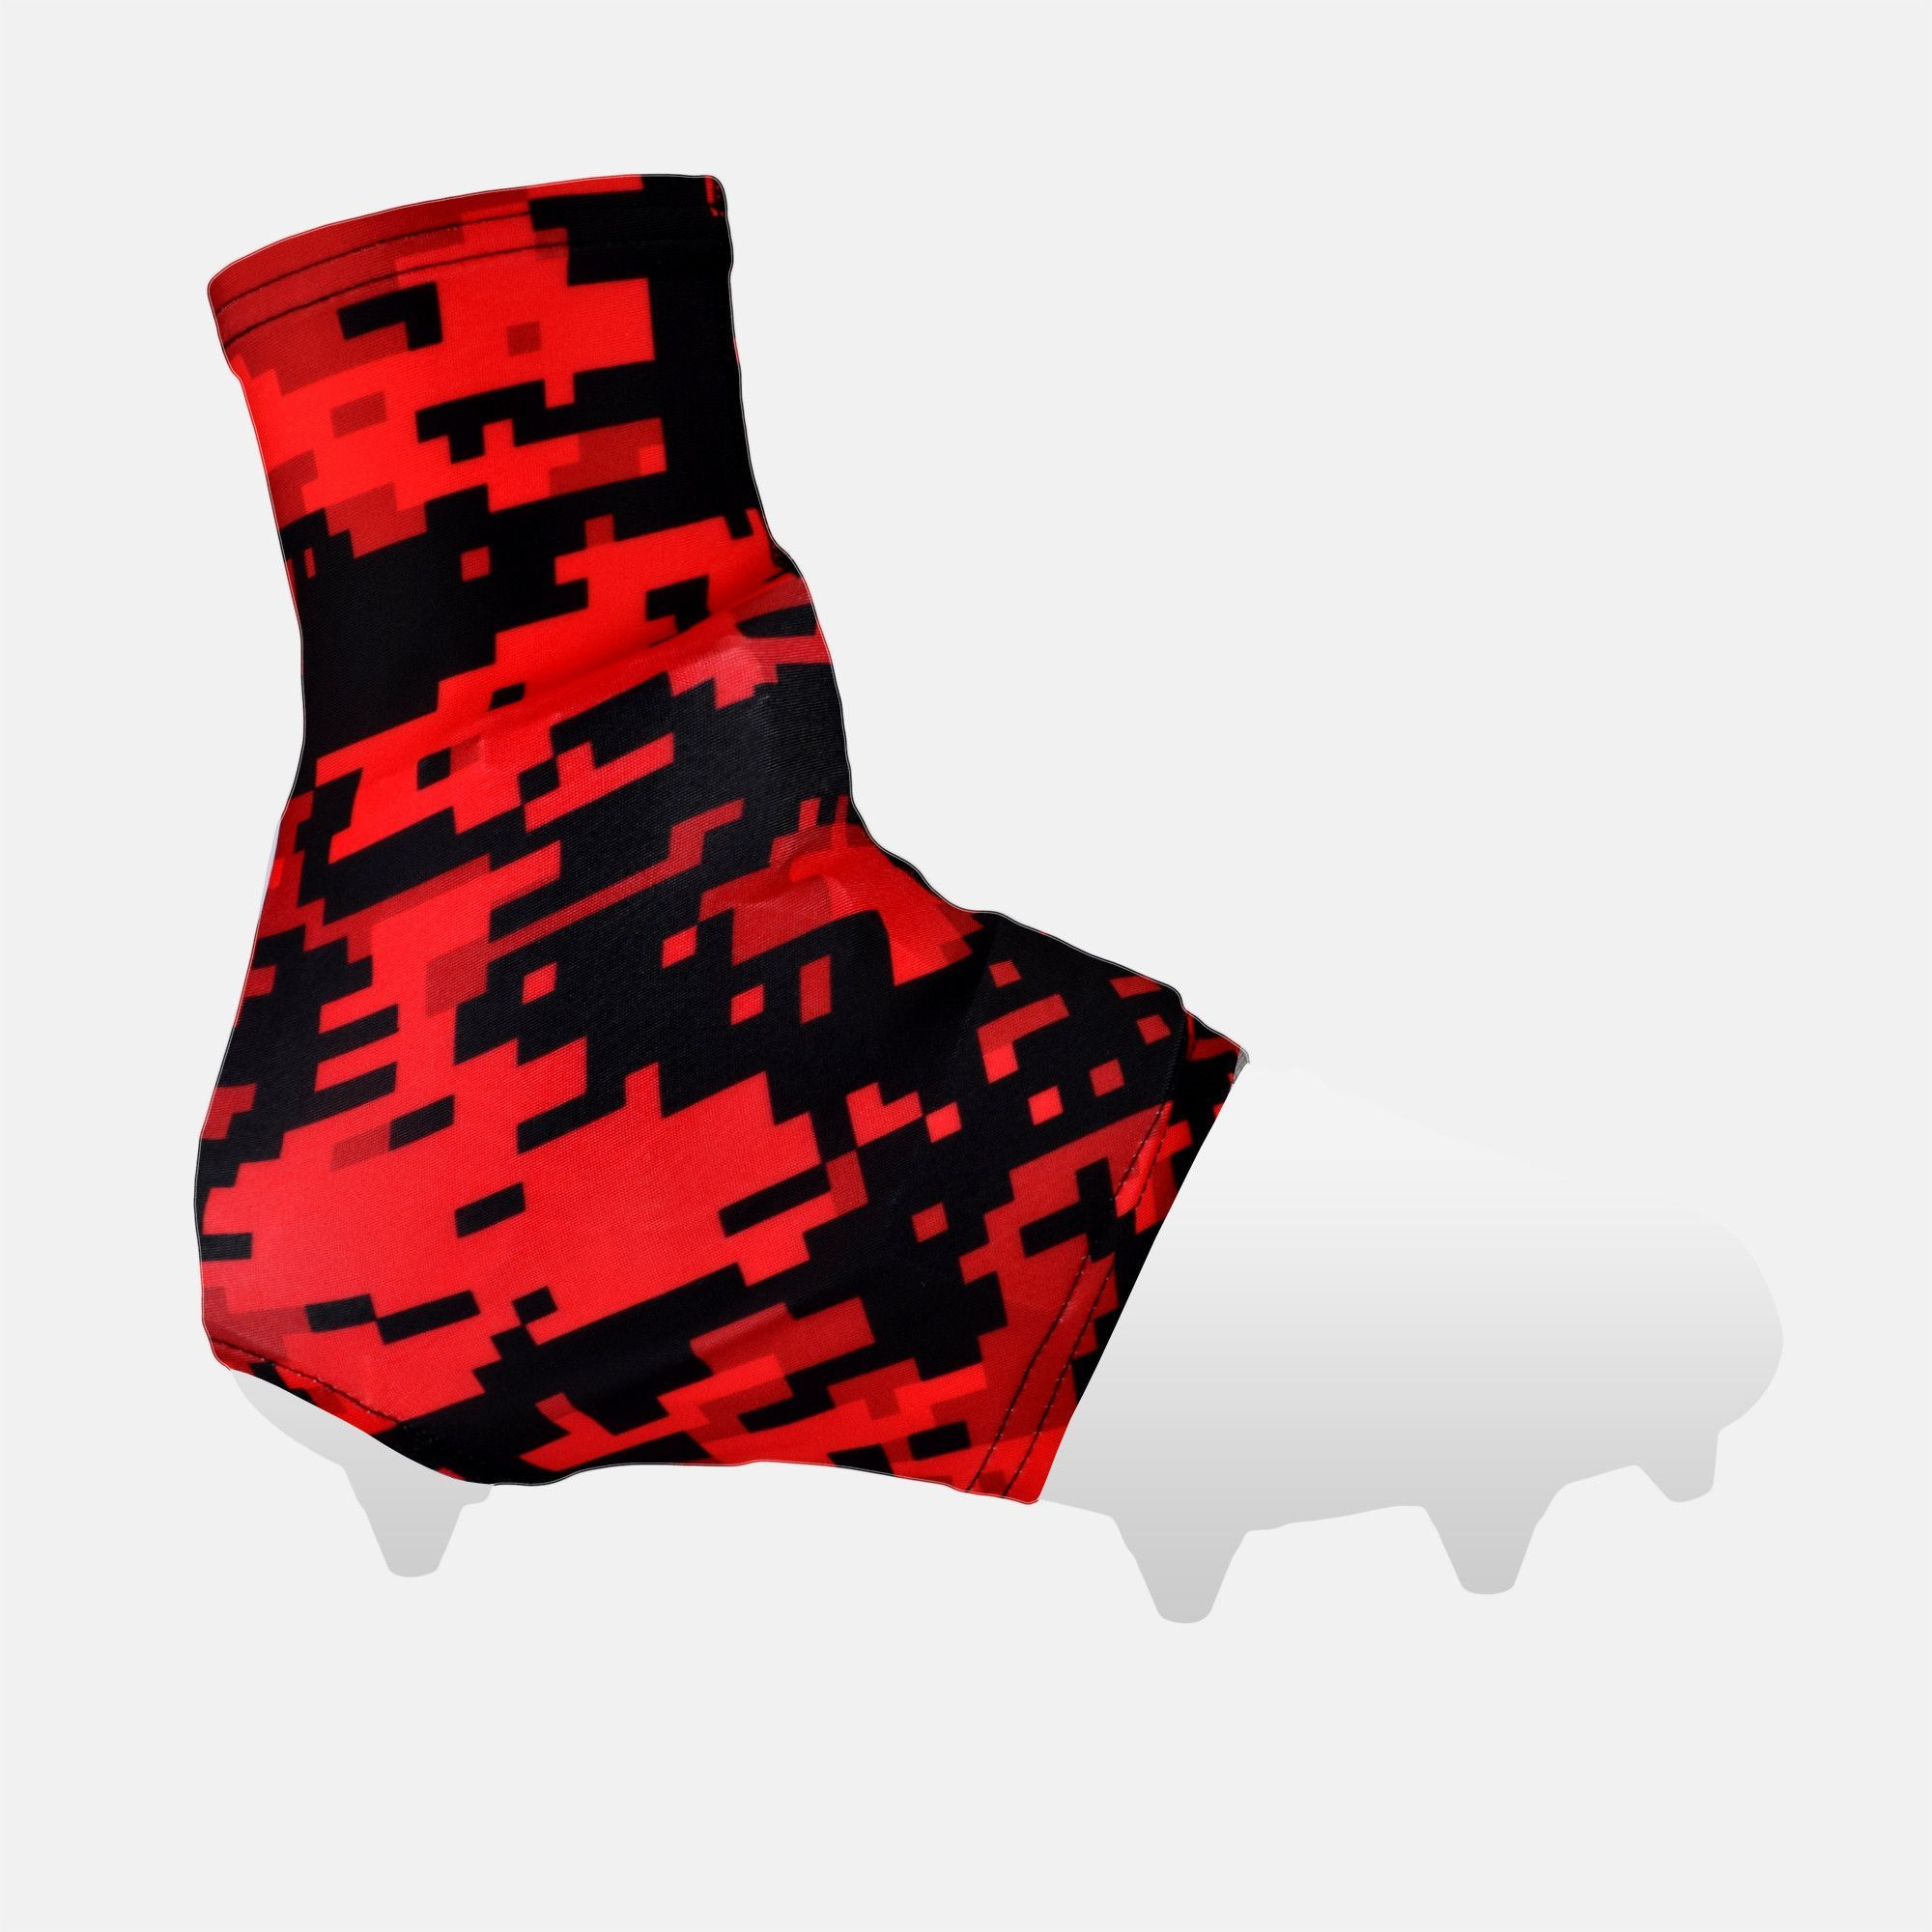 Digital camo red beast spats cleat covers camo and red